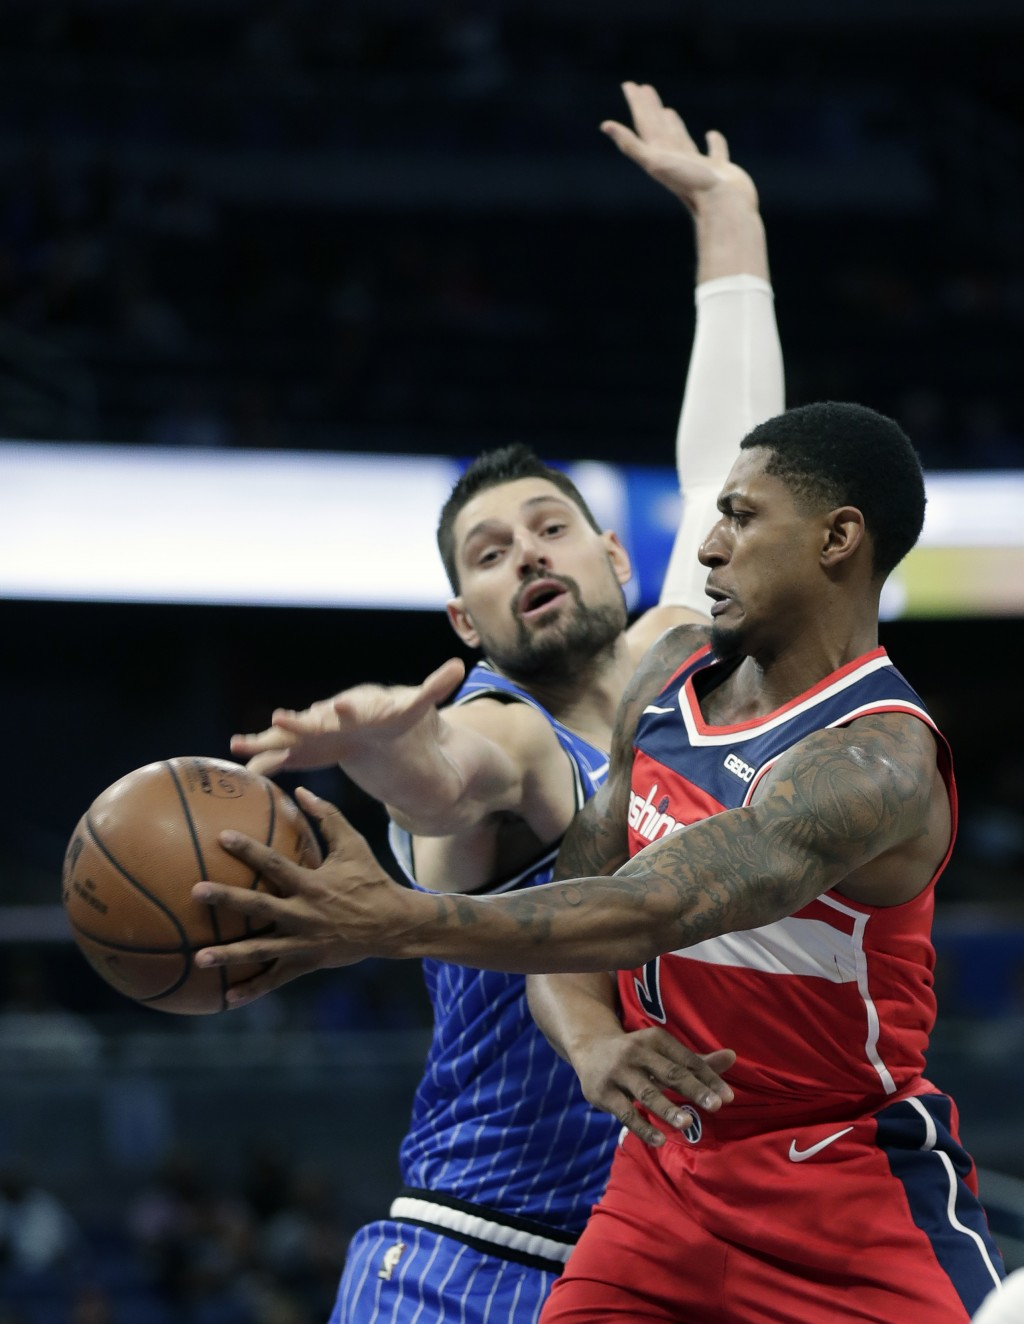 Washington Wizards' Bradley Beal, right, passes the ball around Orlando Magic's Nikola Vucevic during the first half of an NBA basketball game, Friday